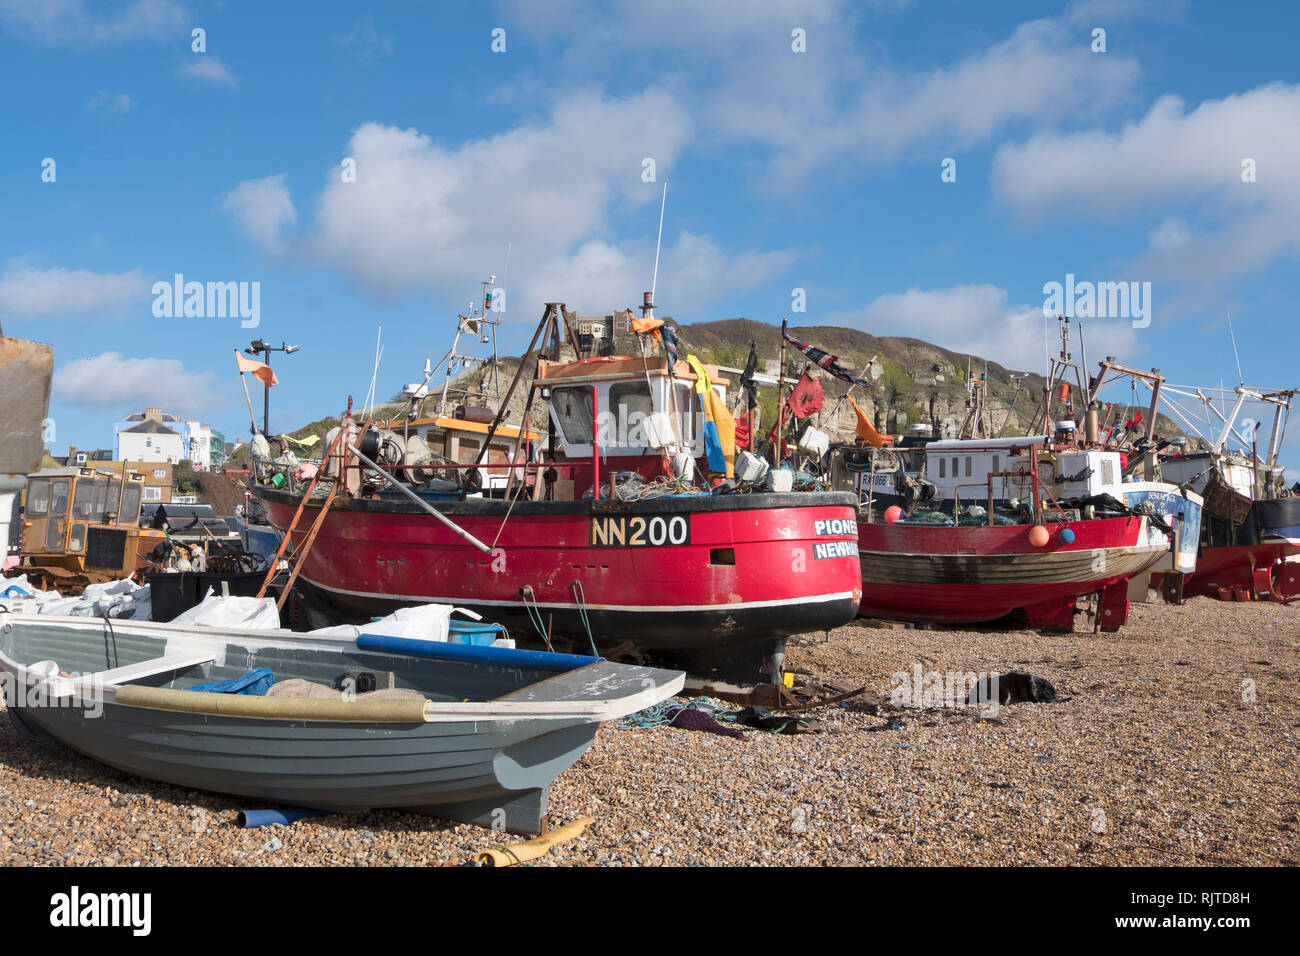 Fishing boats on Hastings Old Town Stade fishermen's beach, East Sussex, UK - Stock Image